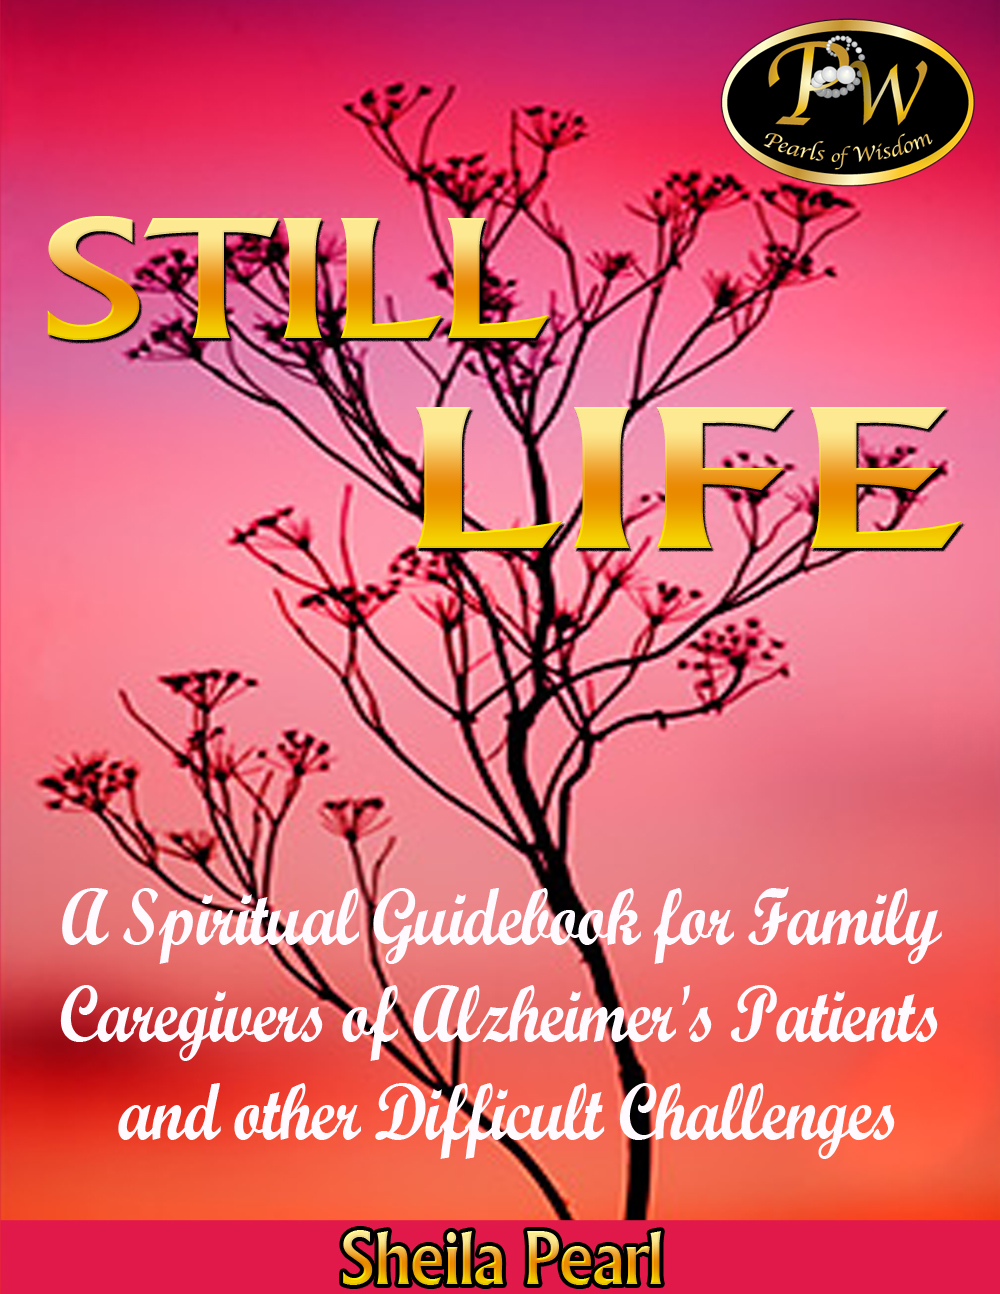 Still Life: A Spiritual Guidebook for Family Caregivers of Alzheimer's Patients and Other Difficult Challenges